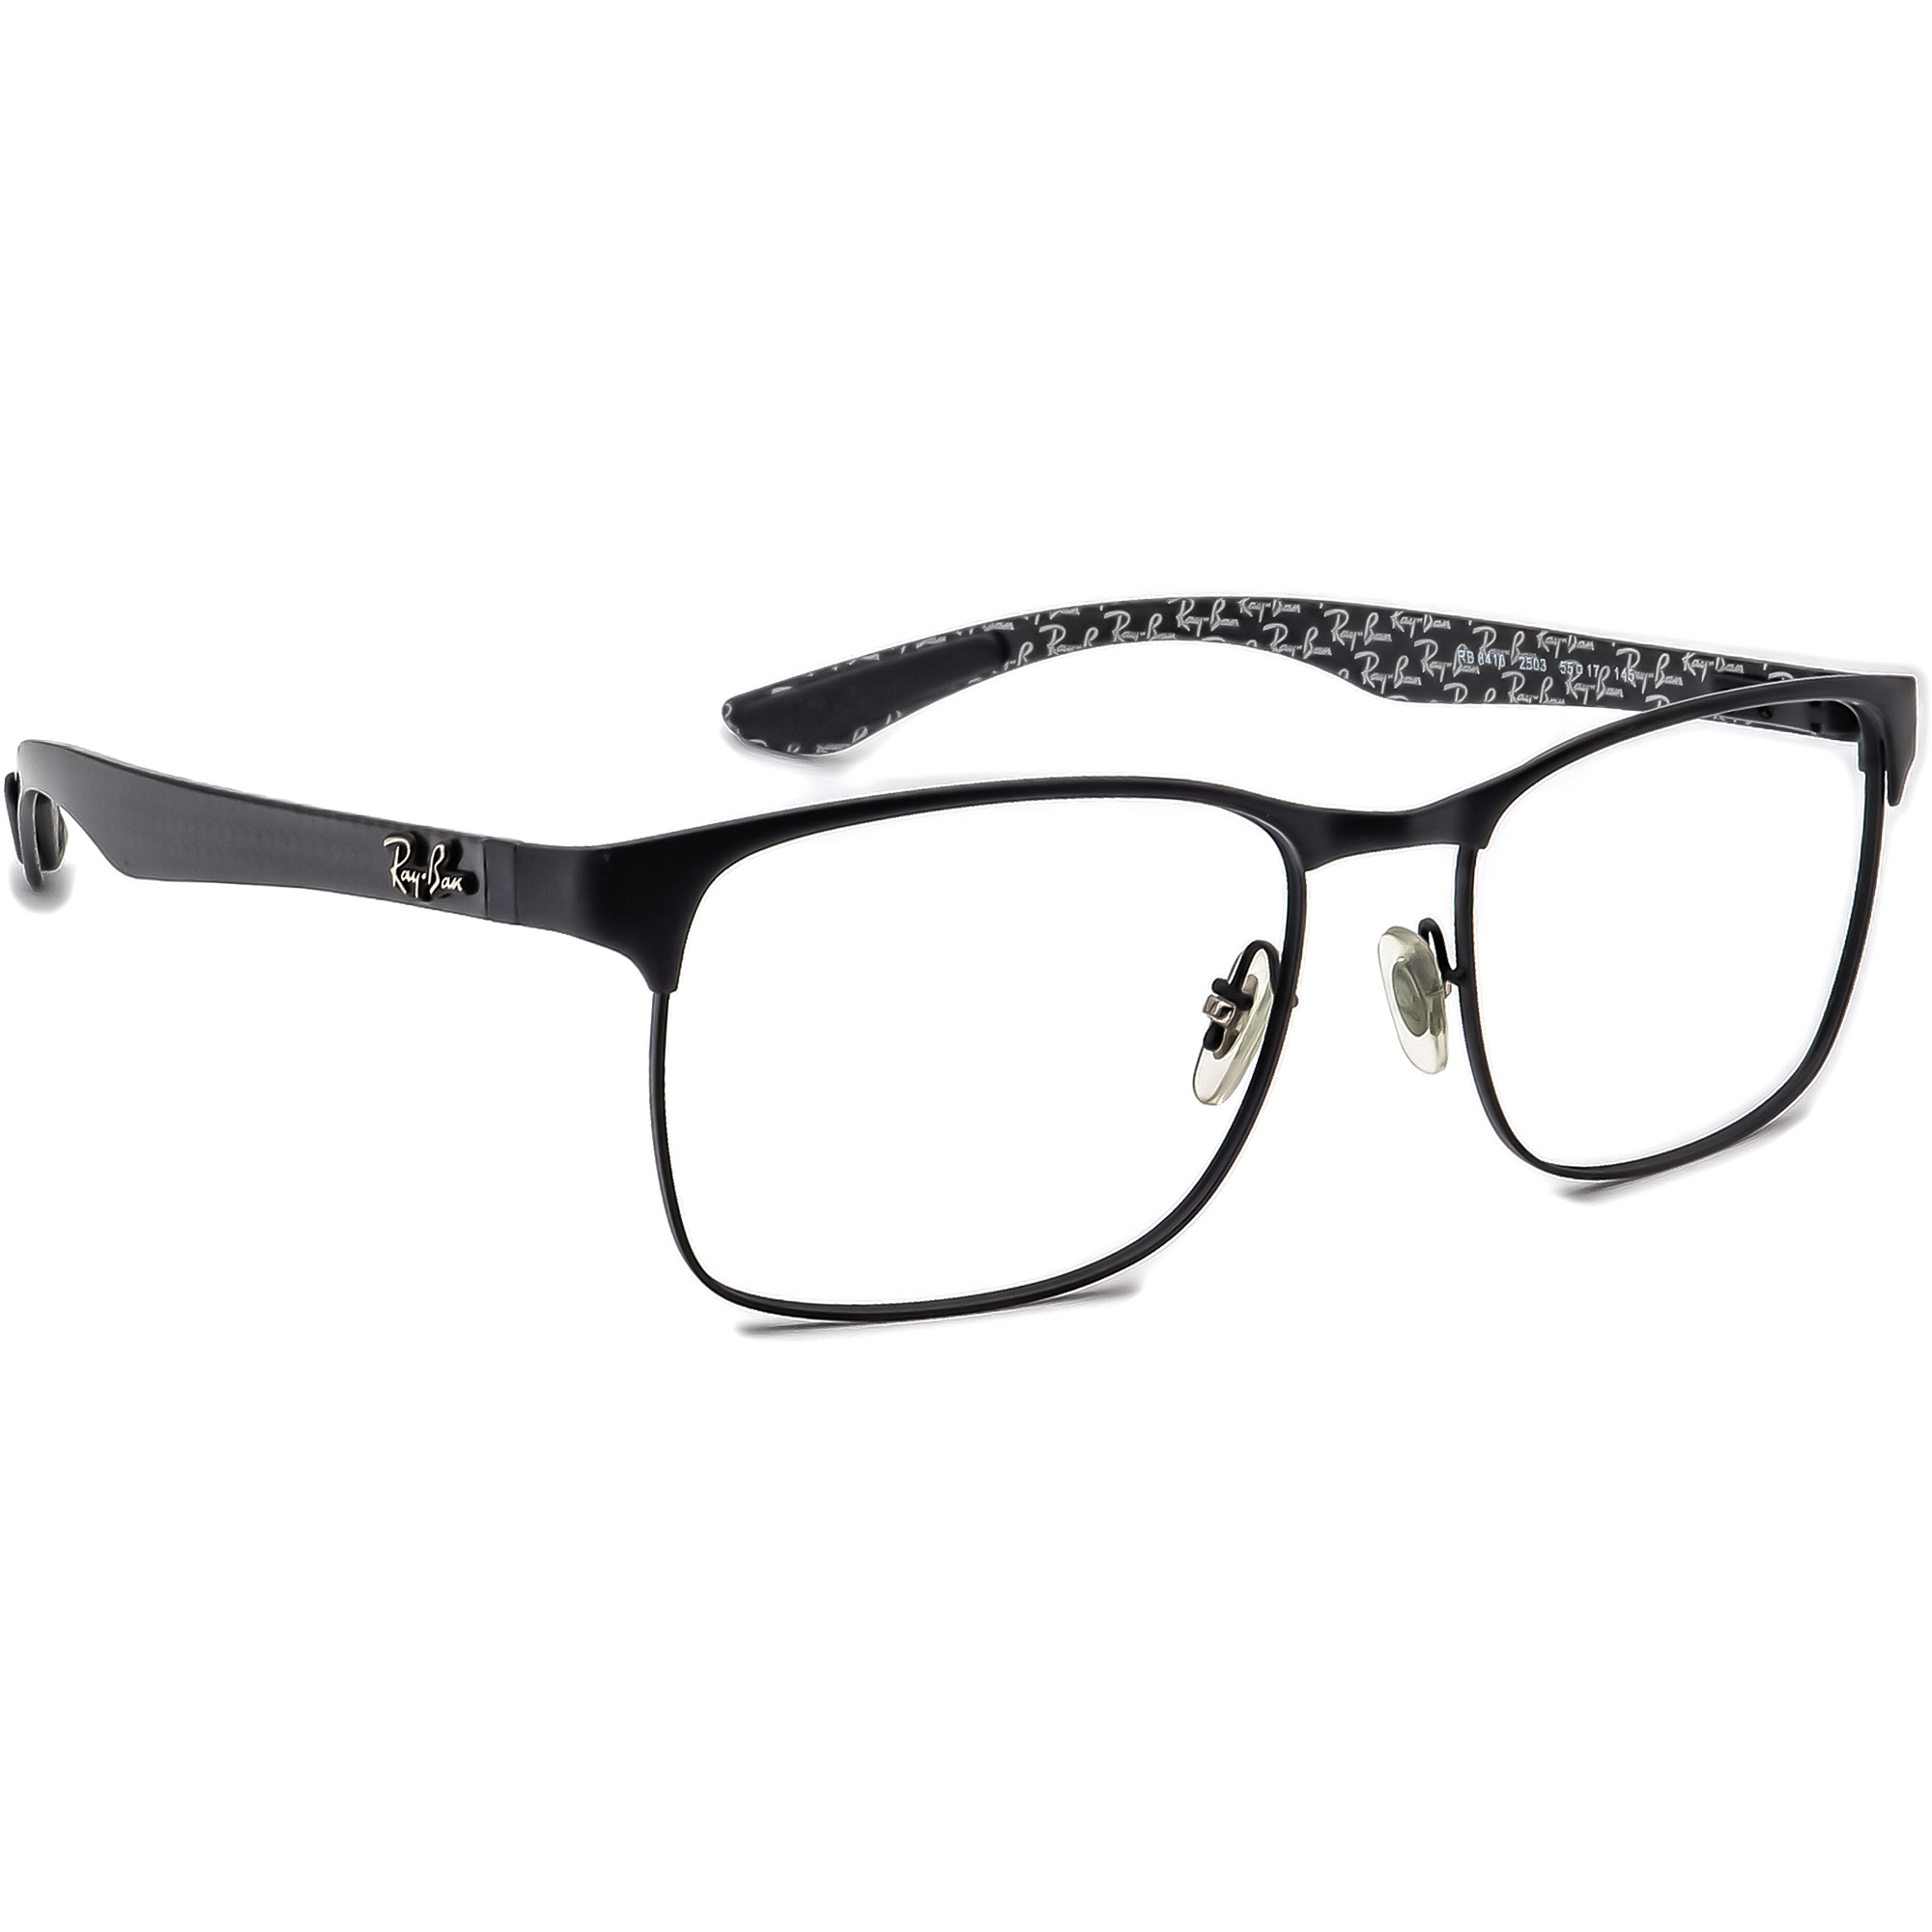 Ray-Ban RB 8416 2503 Carbon Fiber Eyeglasses